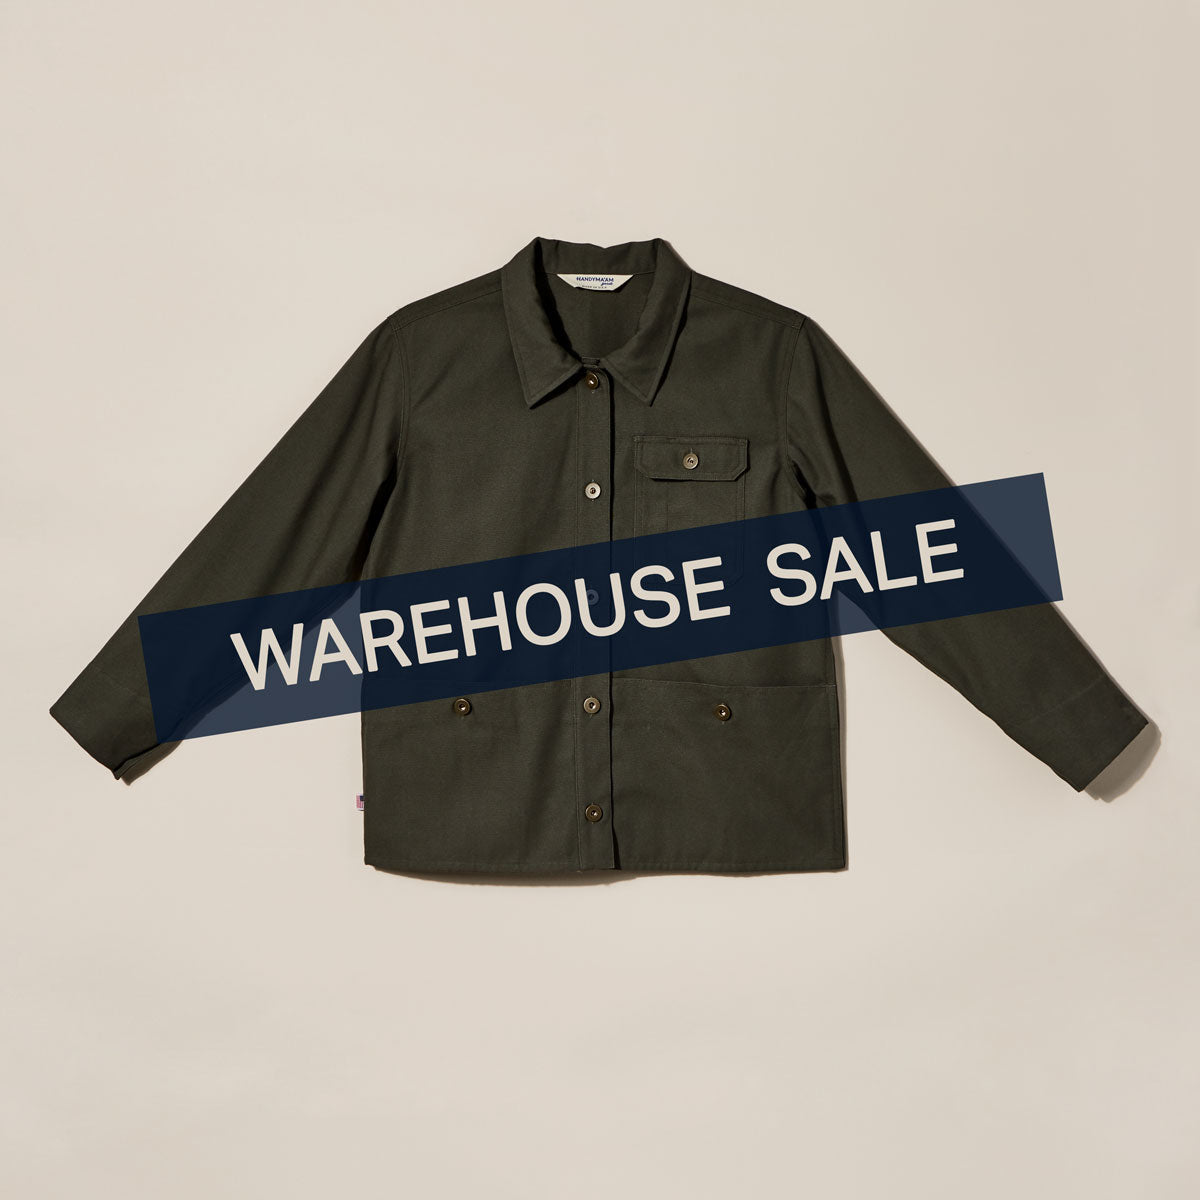 Warehouse Sale - Chore Coats